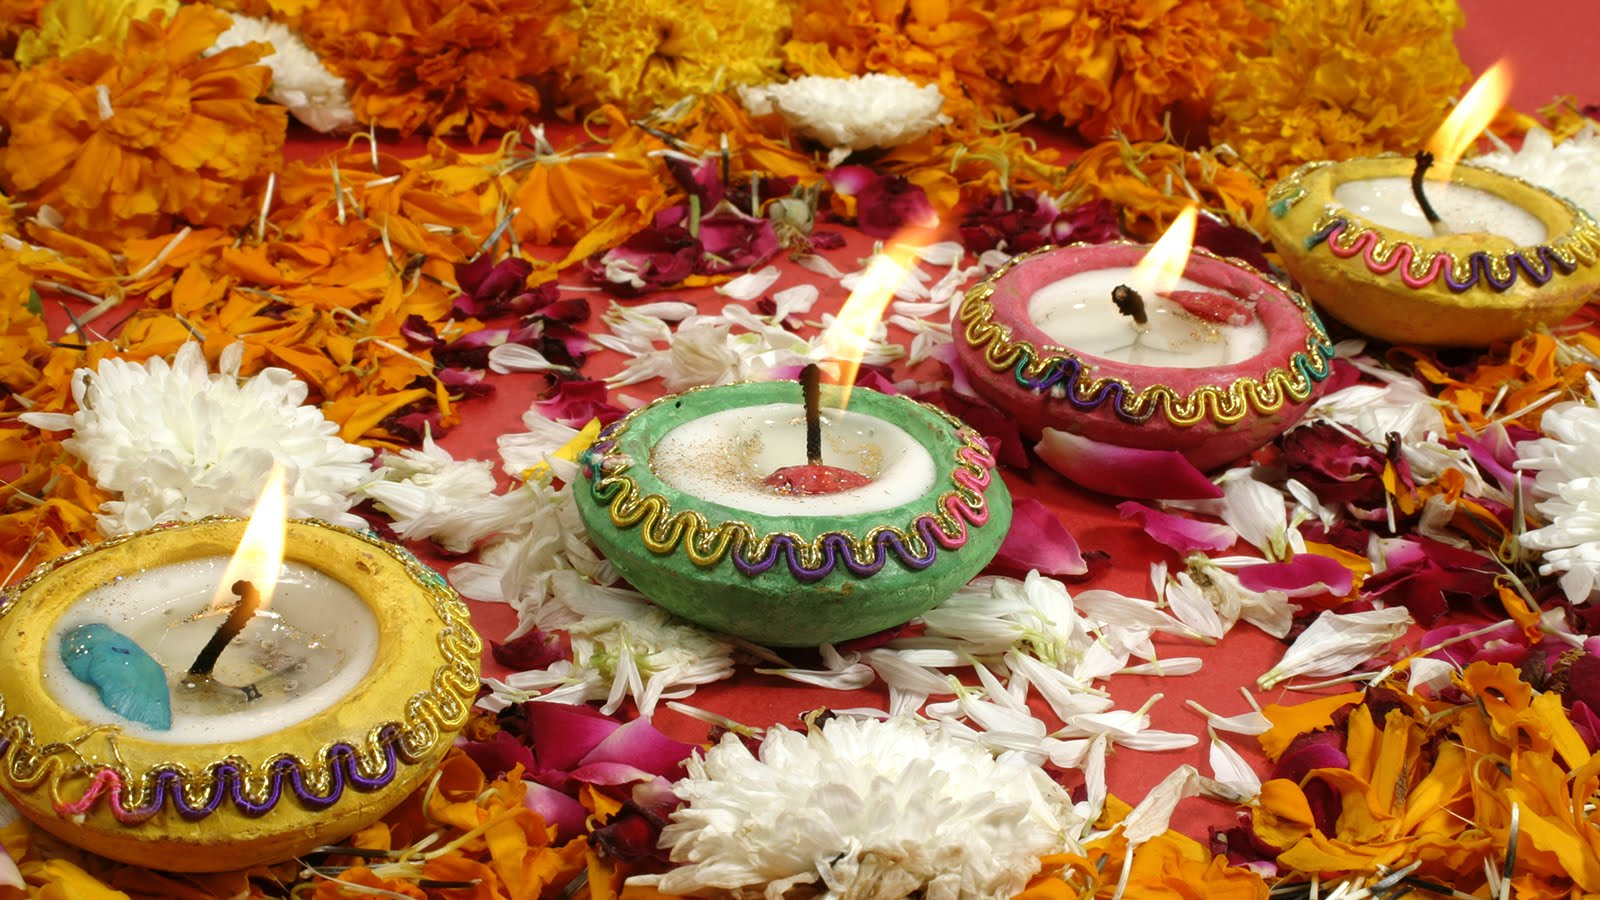 Diwali 2016 8 Little Known Deepavali Folklore And: Lights, Camera, Action, Boom - Happy Diwali!